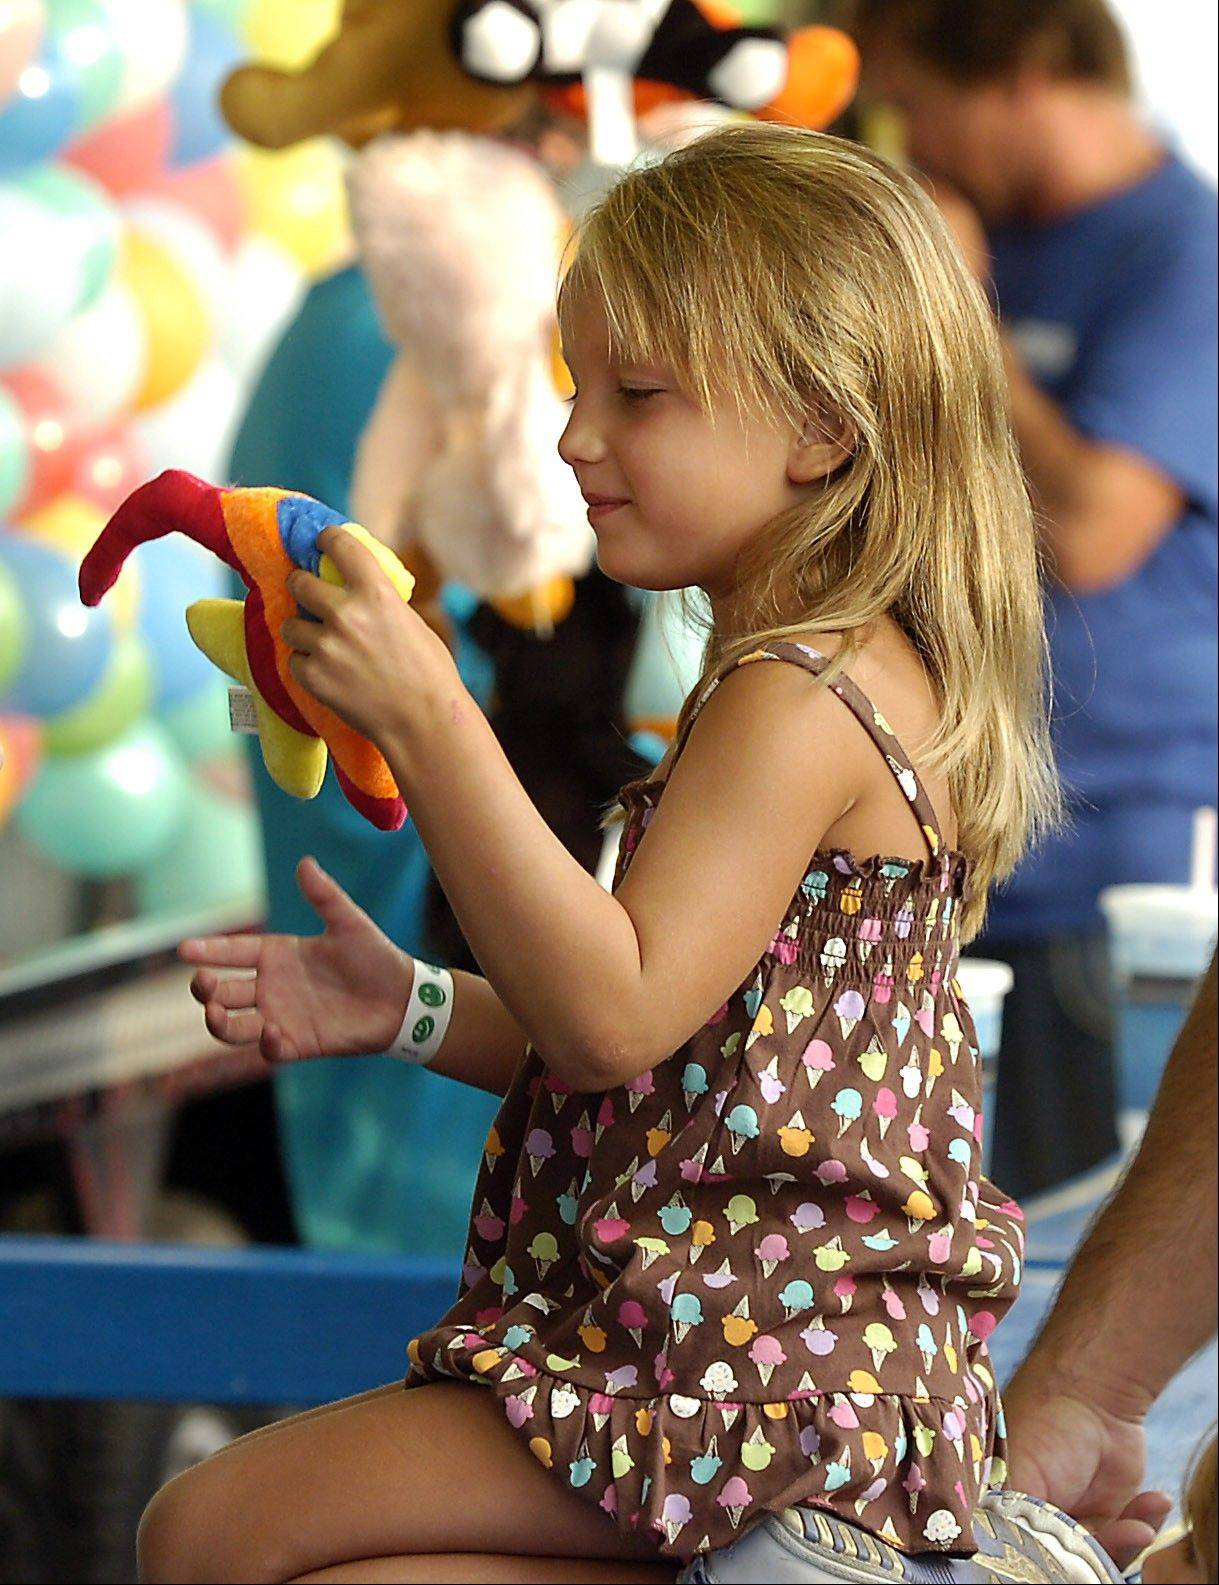 Abby Gricius, 5, of Park Ridge selects a toy after she successfully hit a balloon with a dart at the 2010 festival.